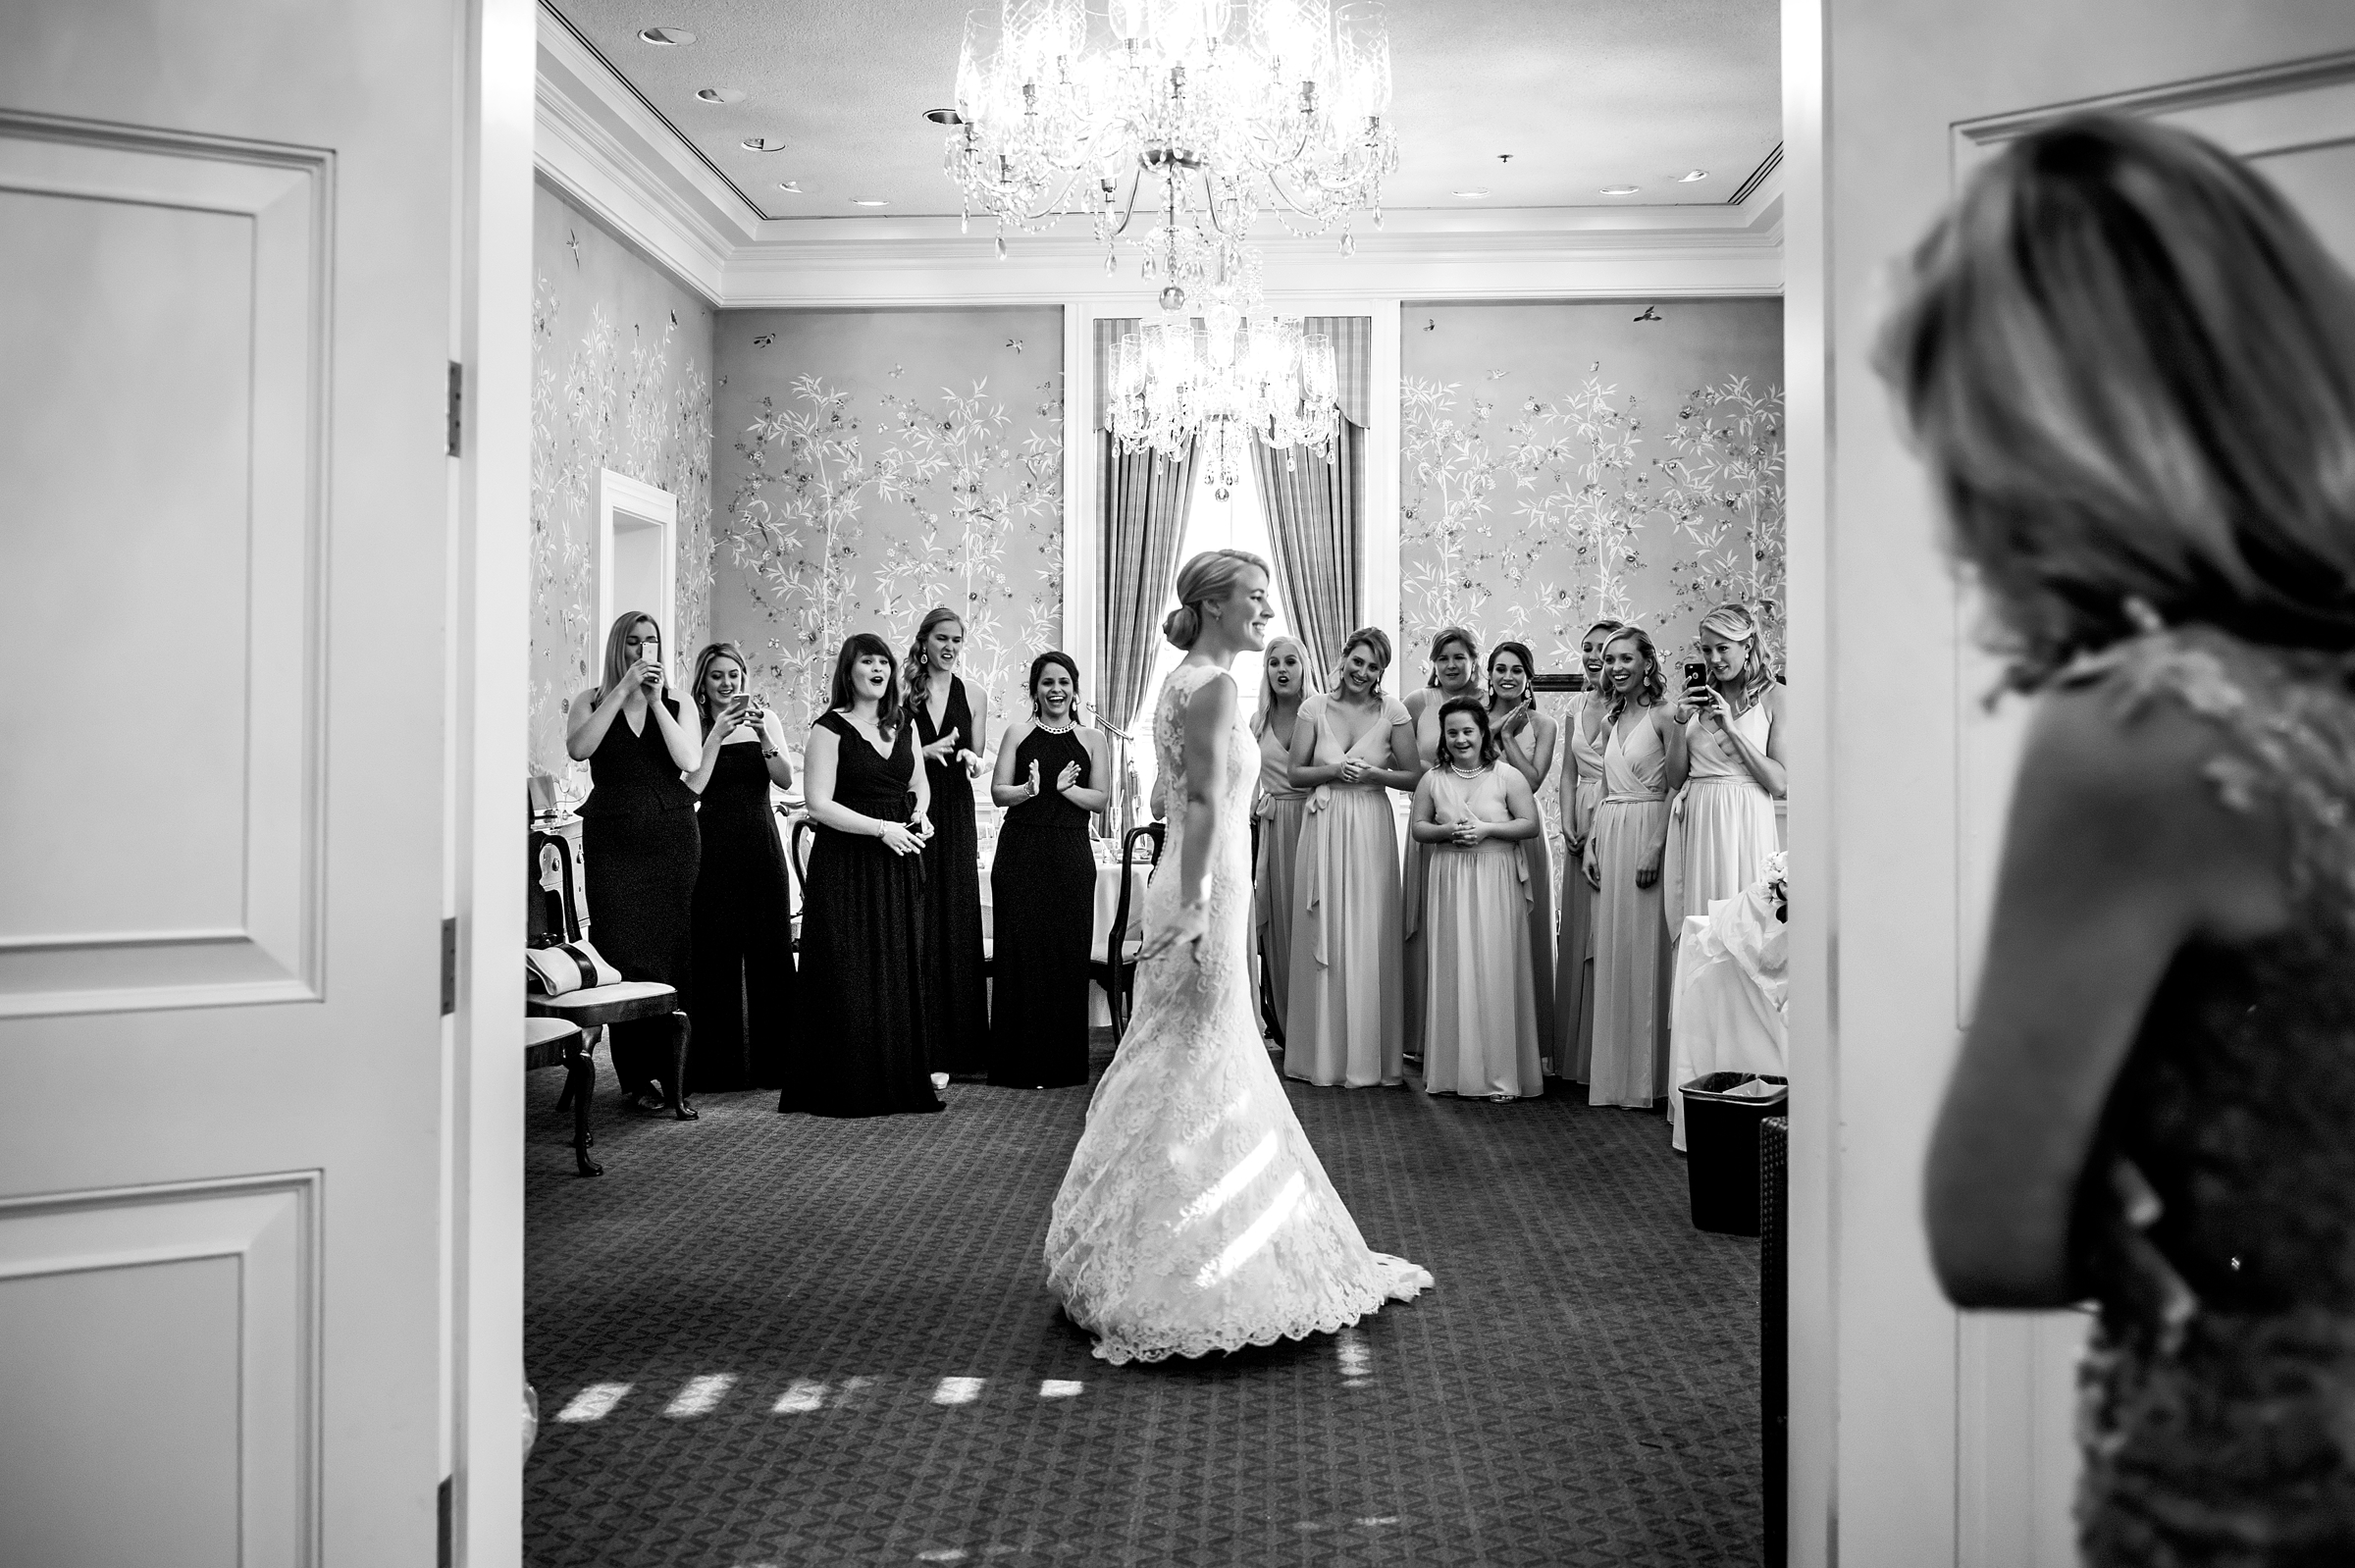 Bride showing off gown - photo by Morgan Lynn Photography